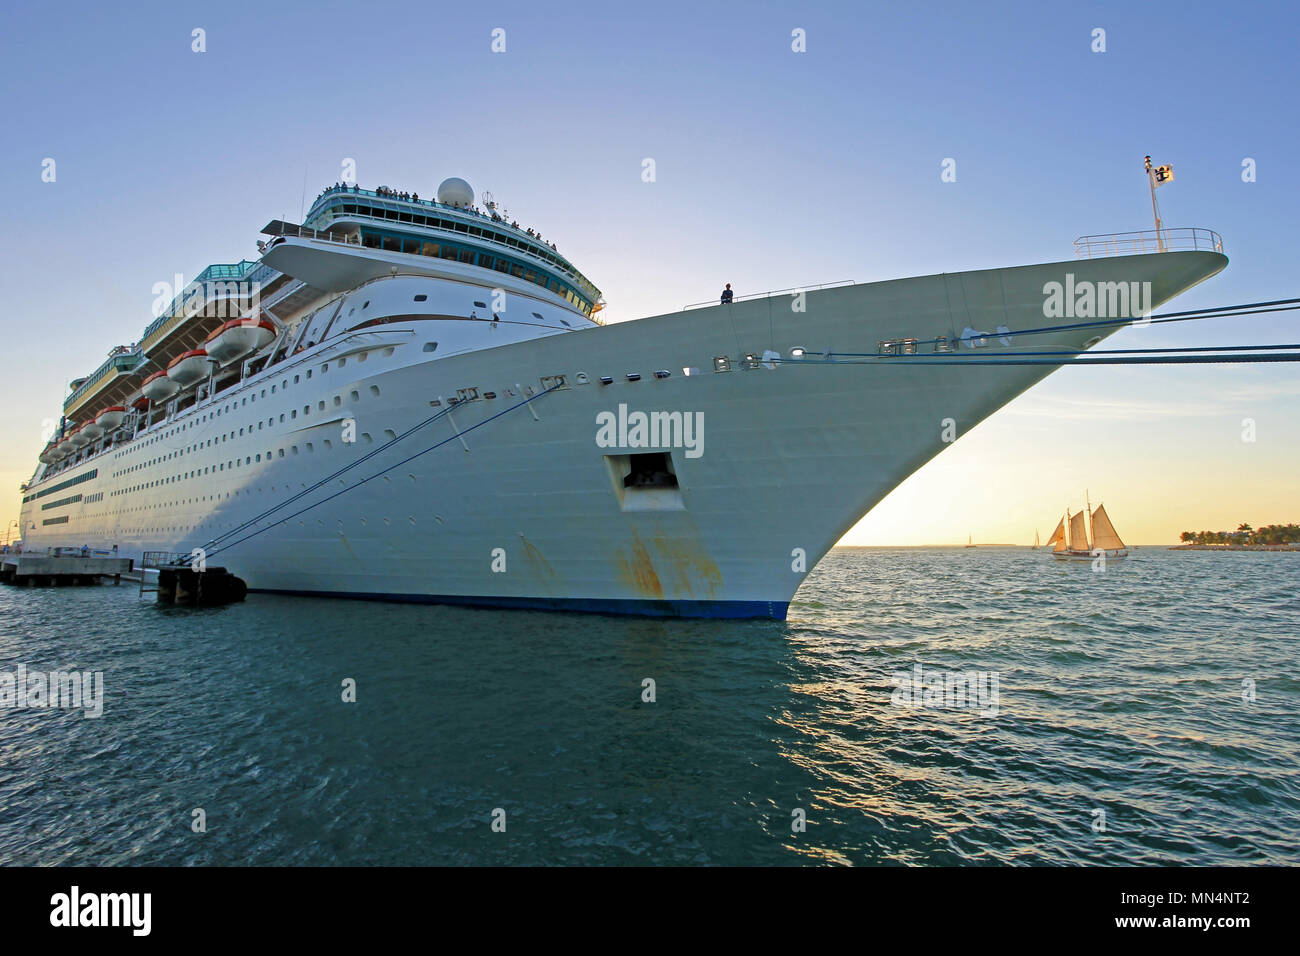 Big cruise ship and small sailing boat, size comparison, Key West